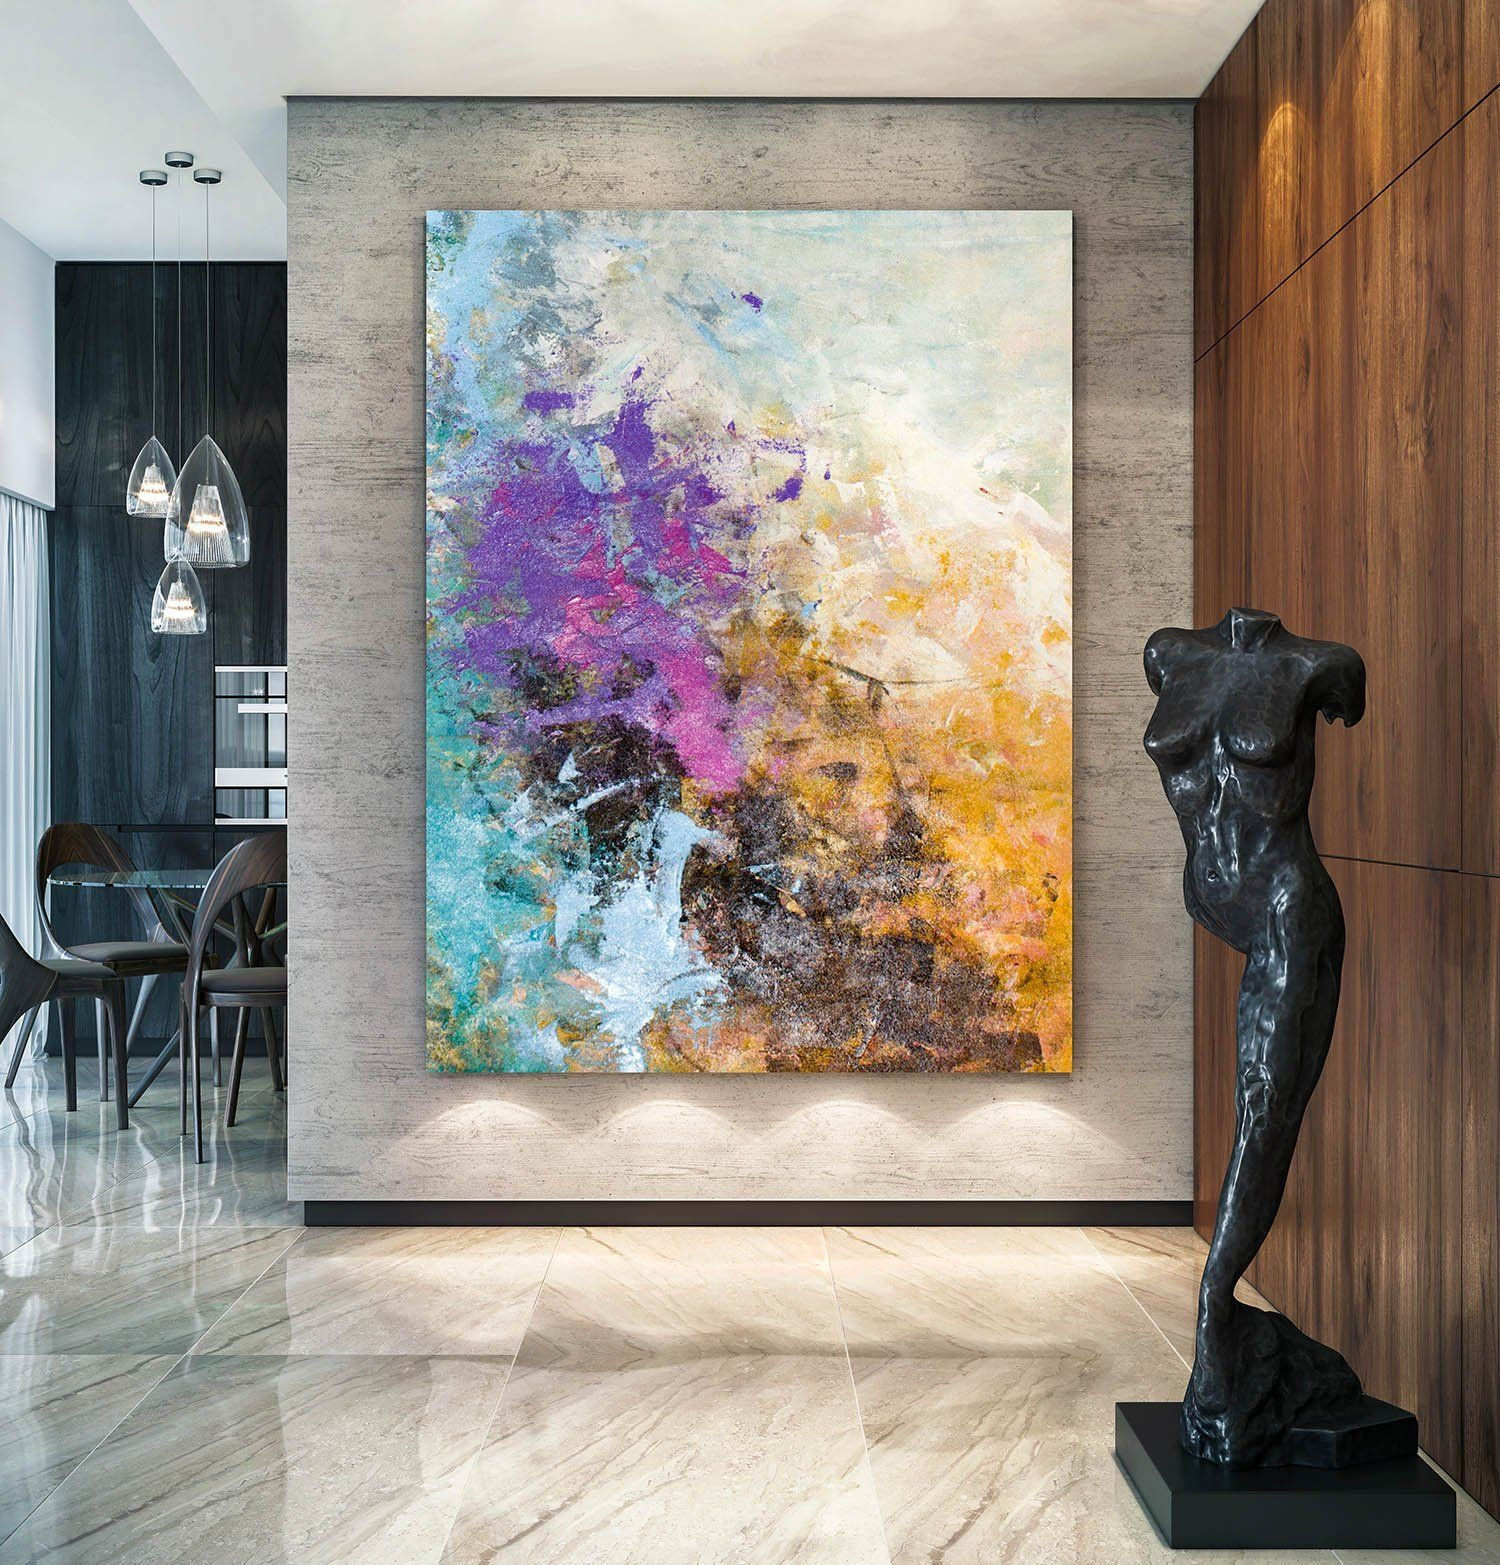 Large Acrylic Abstract Textured Paintings Contemporary Colourful Abstracts Extra Large Wall Art Abstract Paintings Abstract Abstract Painting Textured Wall Art